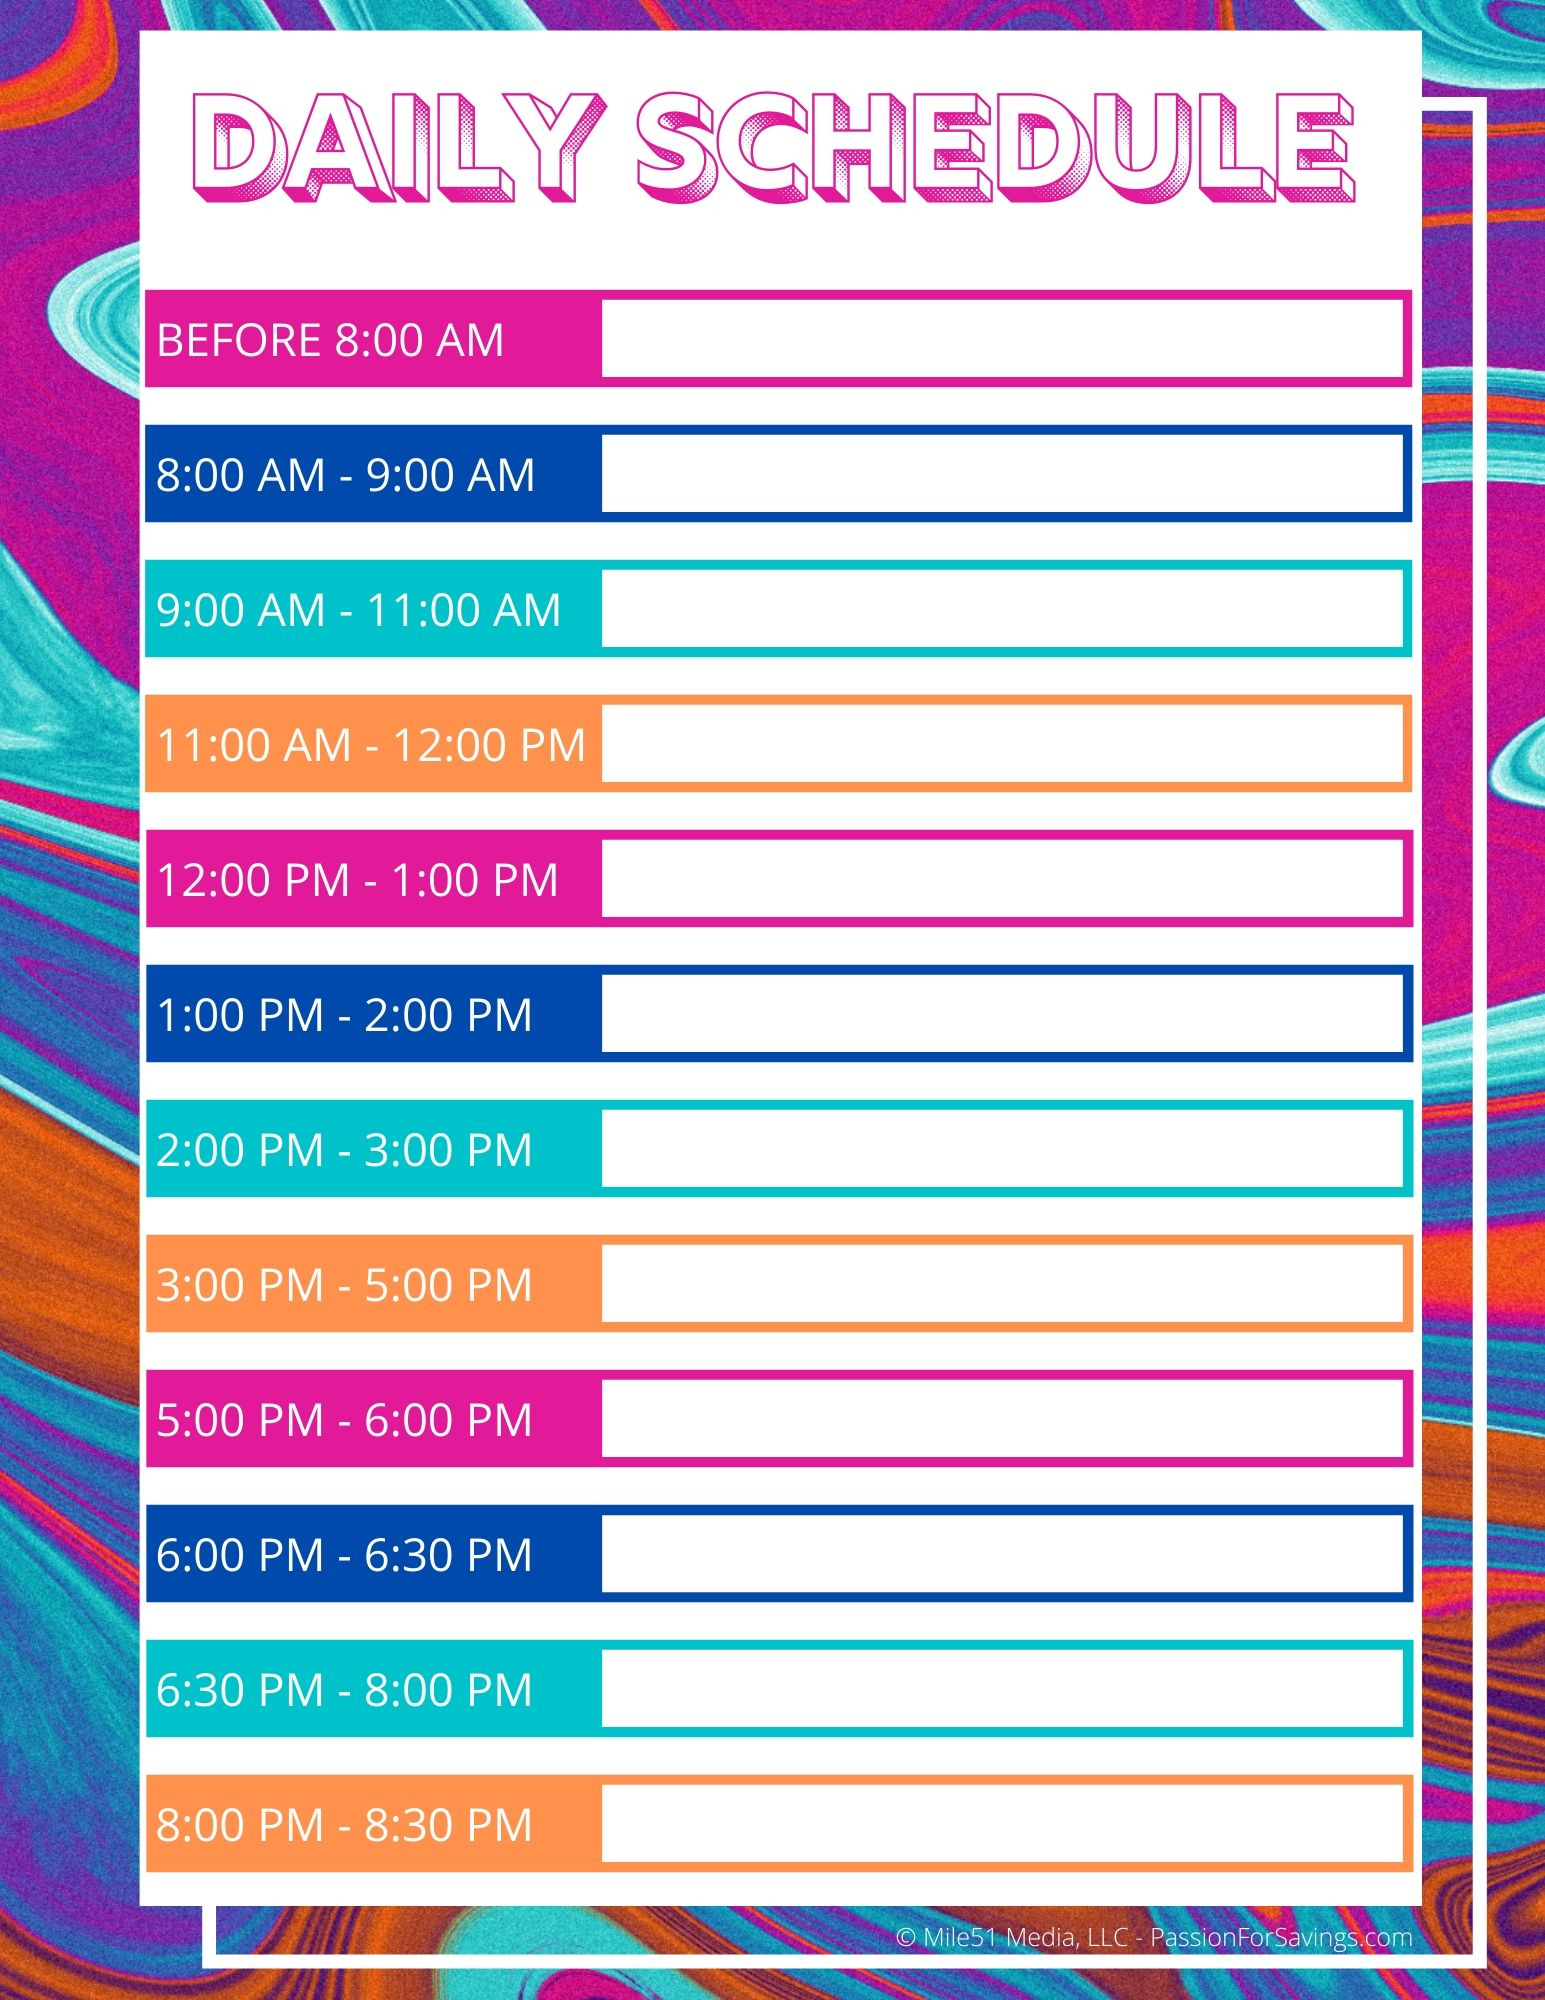 Daily Schedule For Kids While They Are All Home Right Now